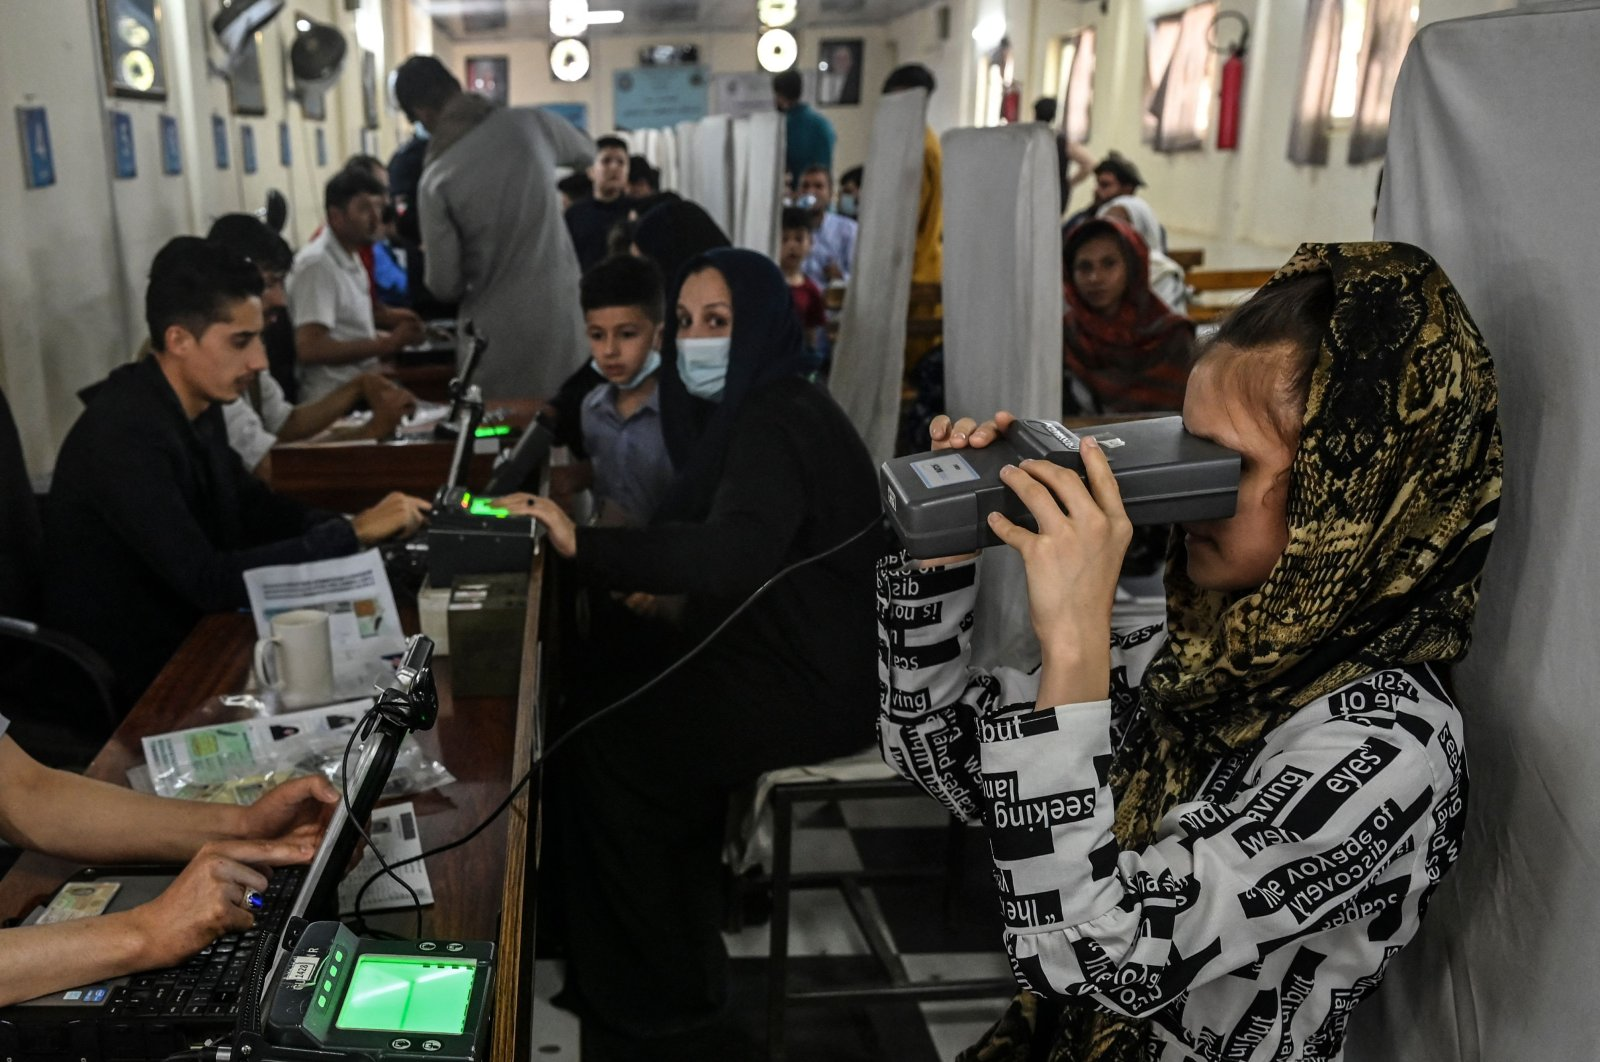 A woman looks through an optical biometric reader to submit her passport application at an office in Kabul, Afghanistan, July 25, 2021. (AFP Photo)